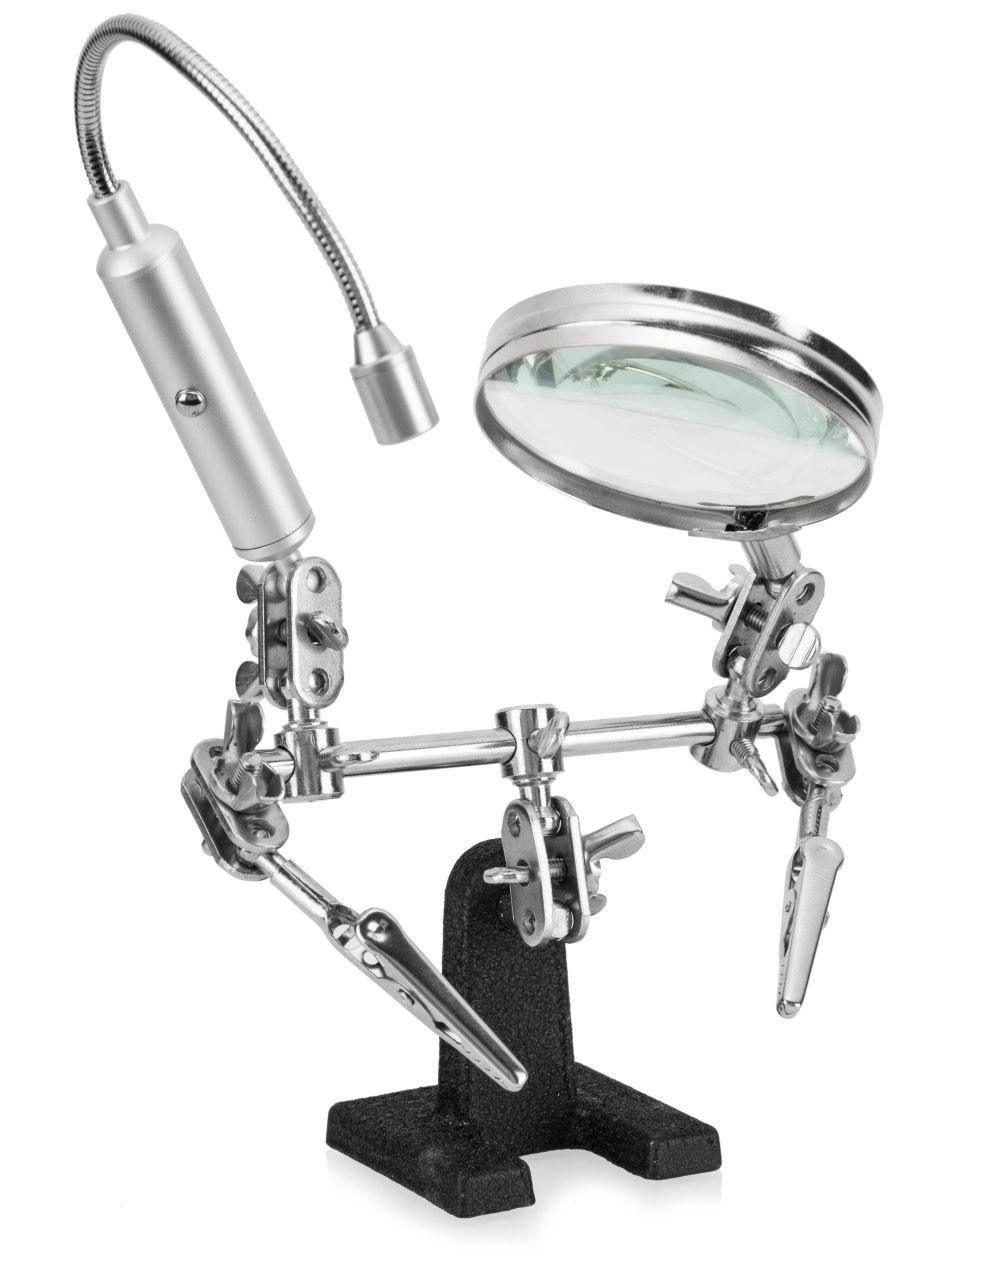 RamPro Helping Hand Magnifier Glass Stand with Flexible Neck LED Flashlight & Alligator Clips – 3x Magnifying Lens, Perfect for Soldering, Crafting & Inspecting Micro Objects (Batteries Included) by RamPro (Image #1)